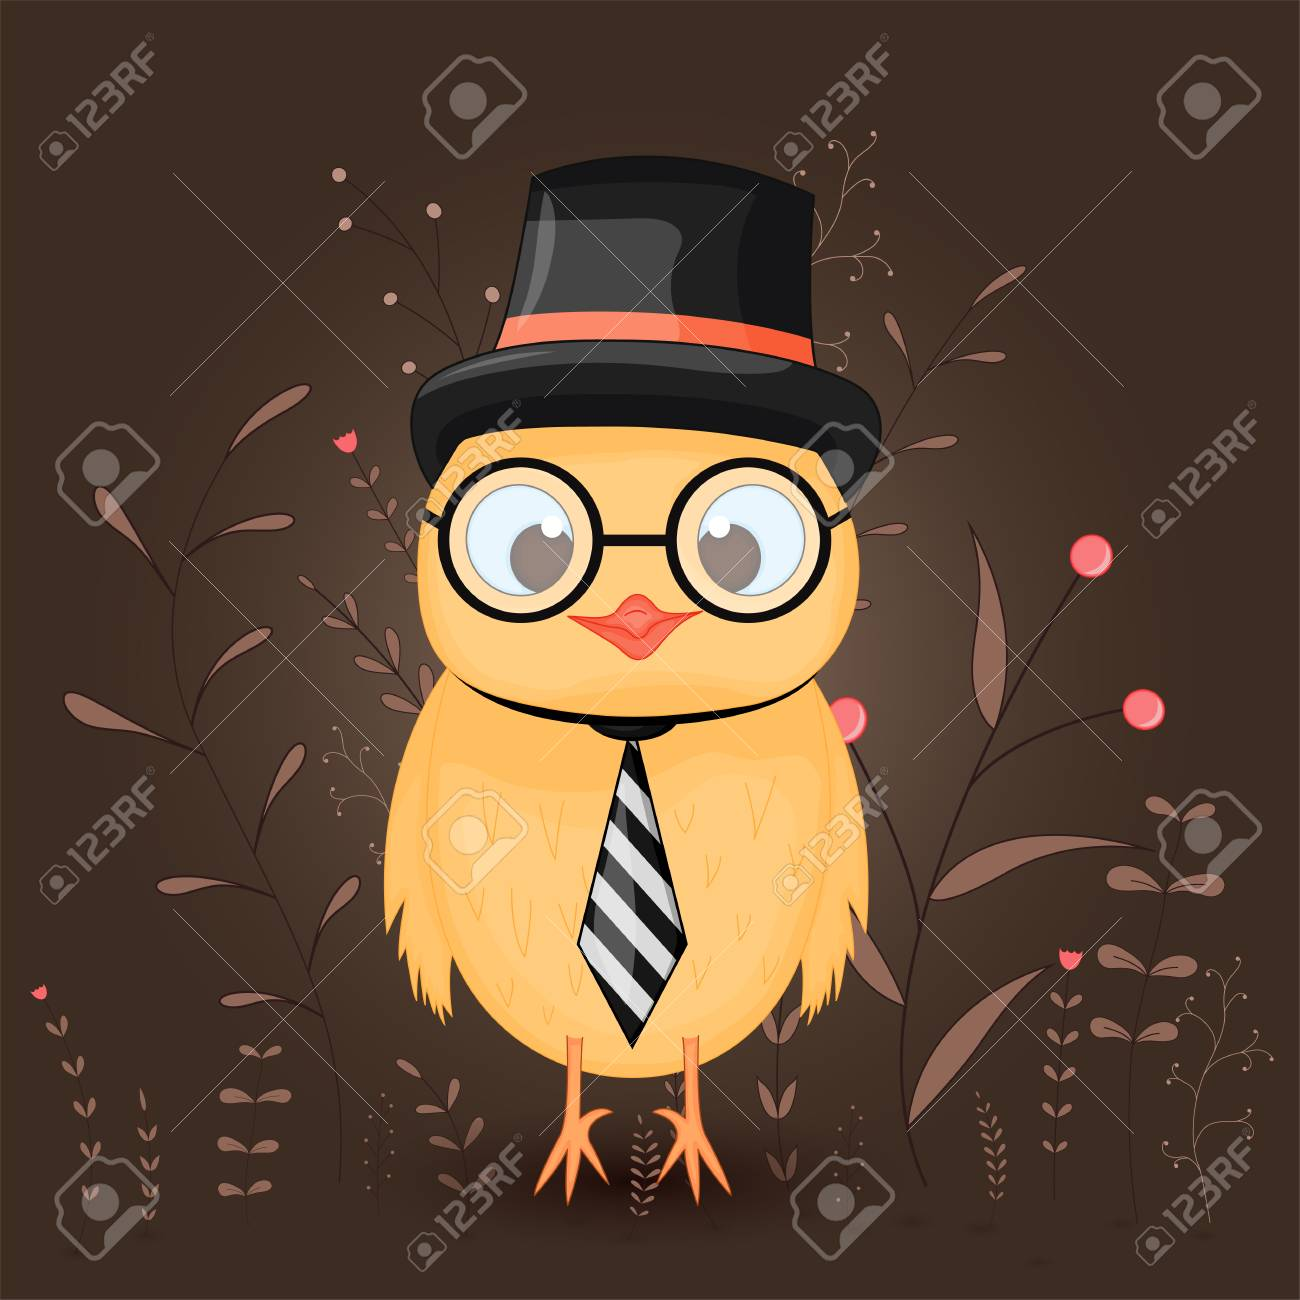 Gift Postcard With Cartoon Animals A Chicken In A Top Hat Tie